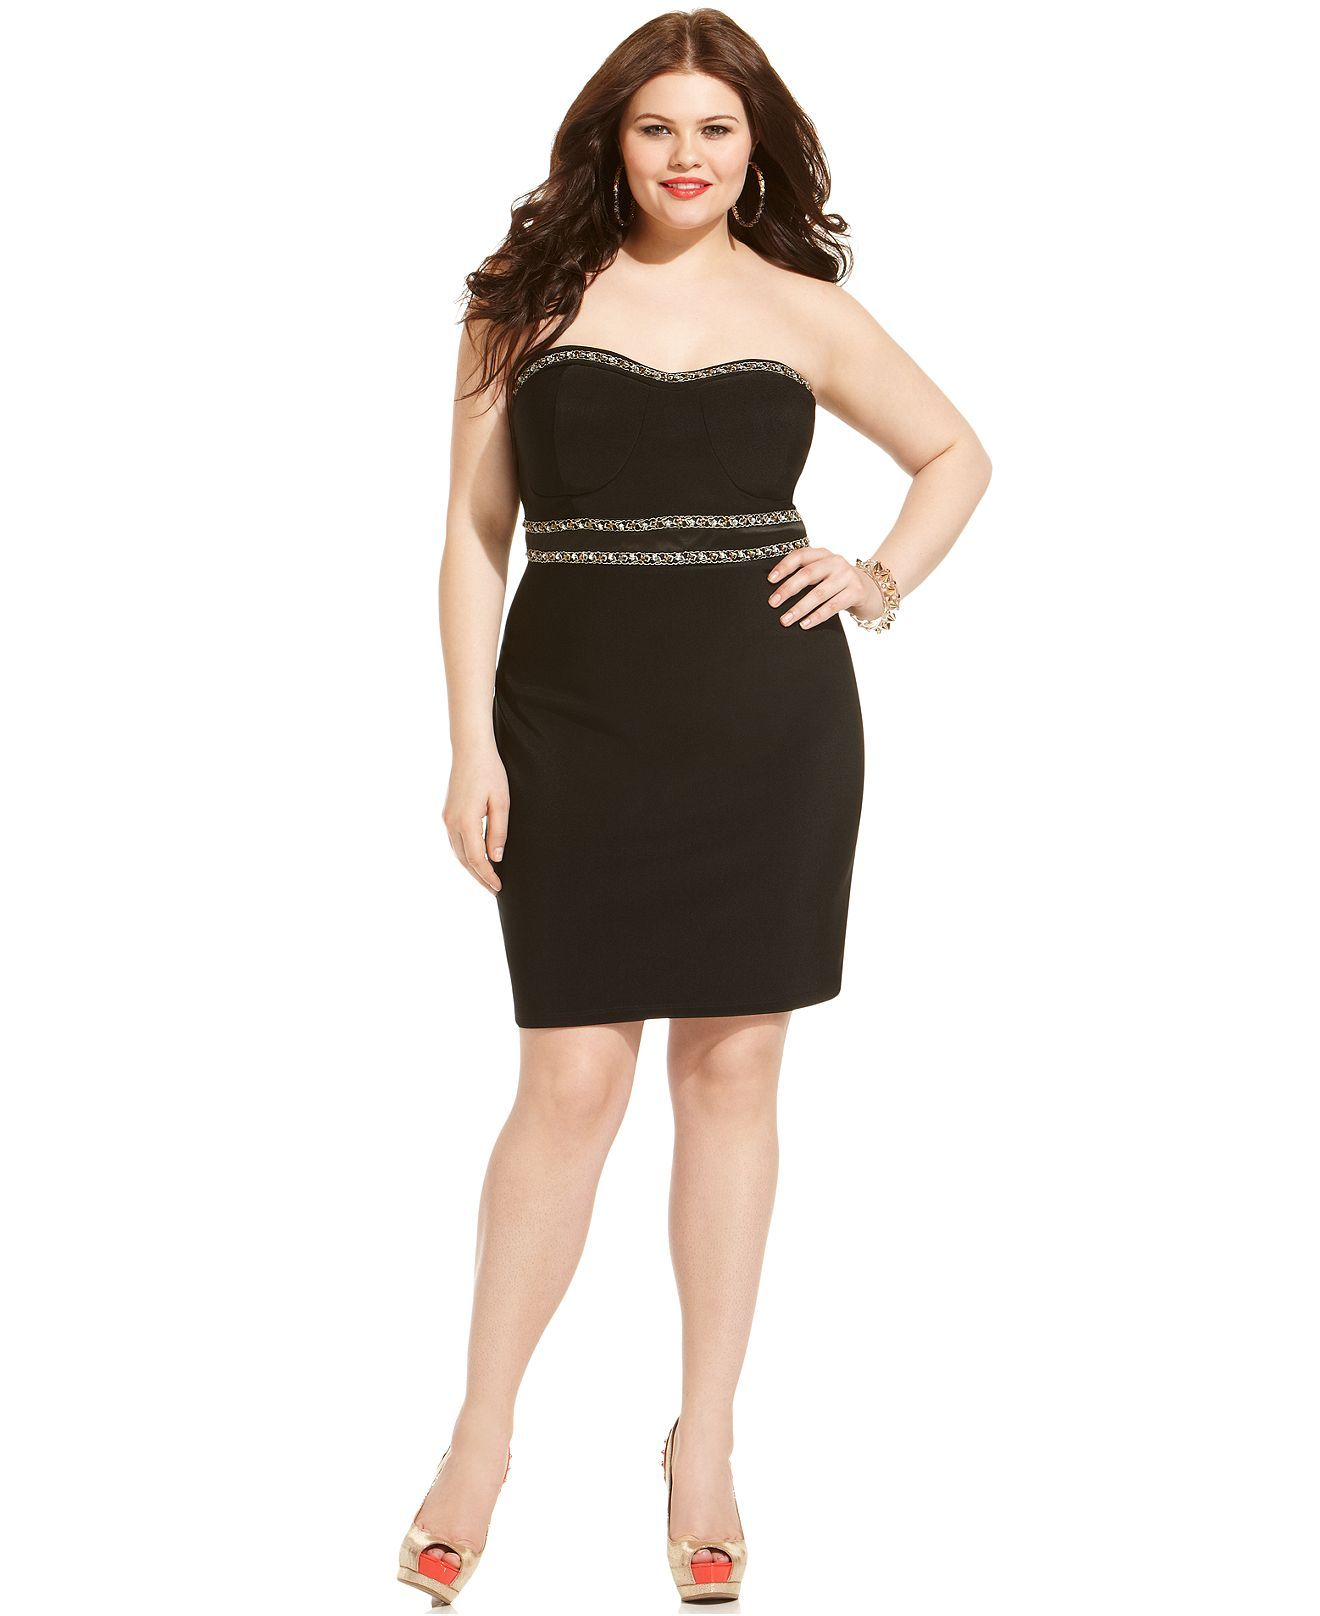 ruby rox plus size dress, strapless embellished empire - plus size